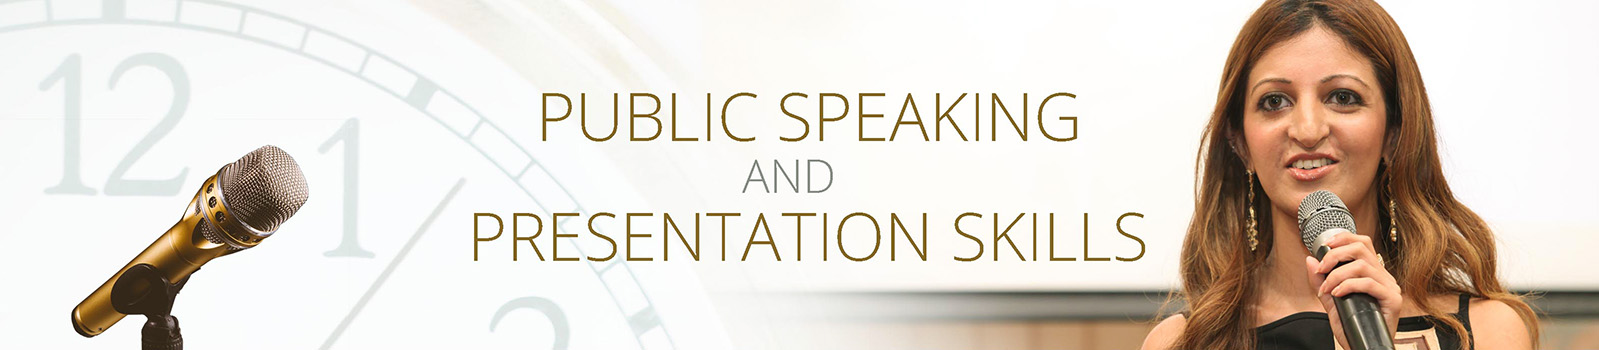 Public Speaking and Presentation Skills Banner